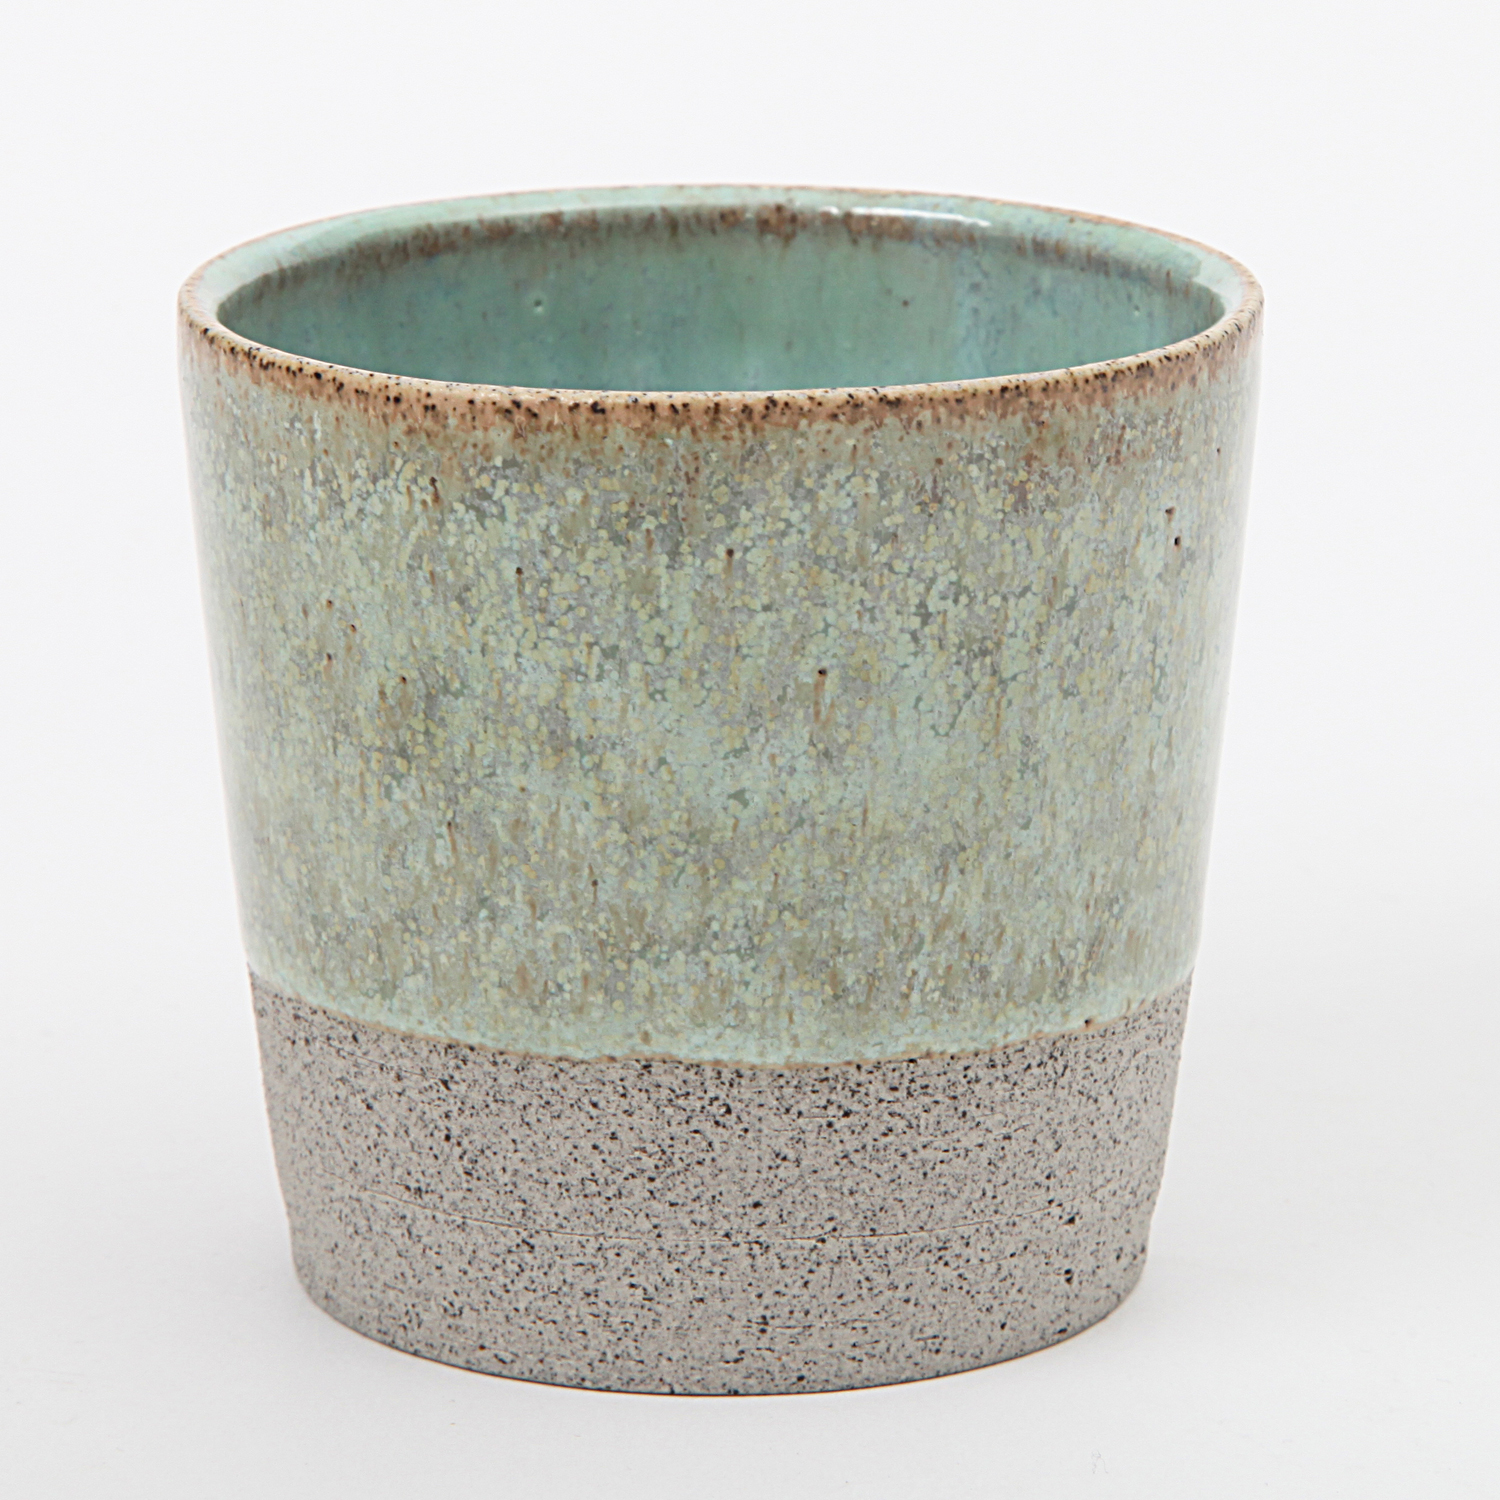 Hejdesign ceramic handmade mug cortado mint green for Handmade mug designs